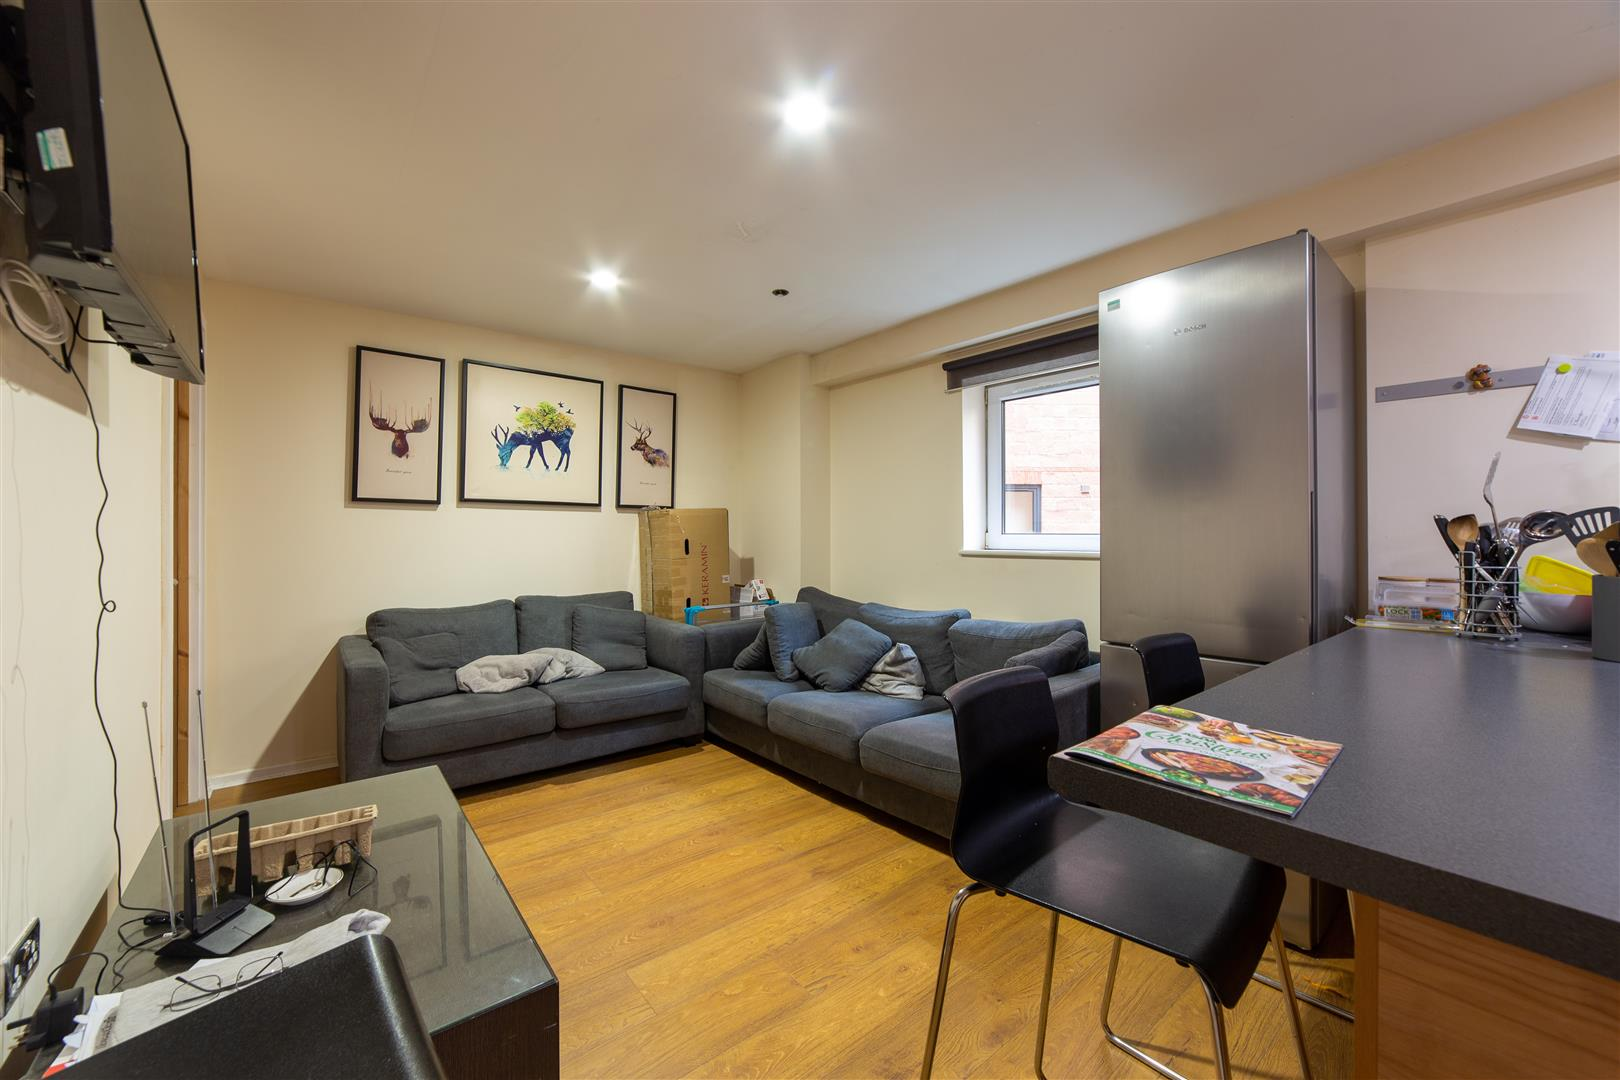 5 bed apartment to rent in Newcastle Upon Tyne, NE1 2JR, NE1